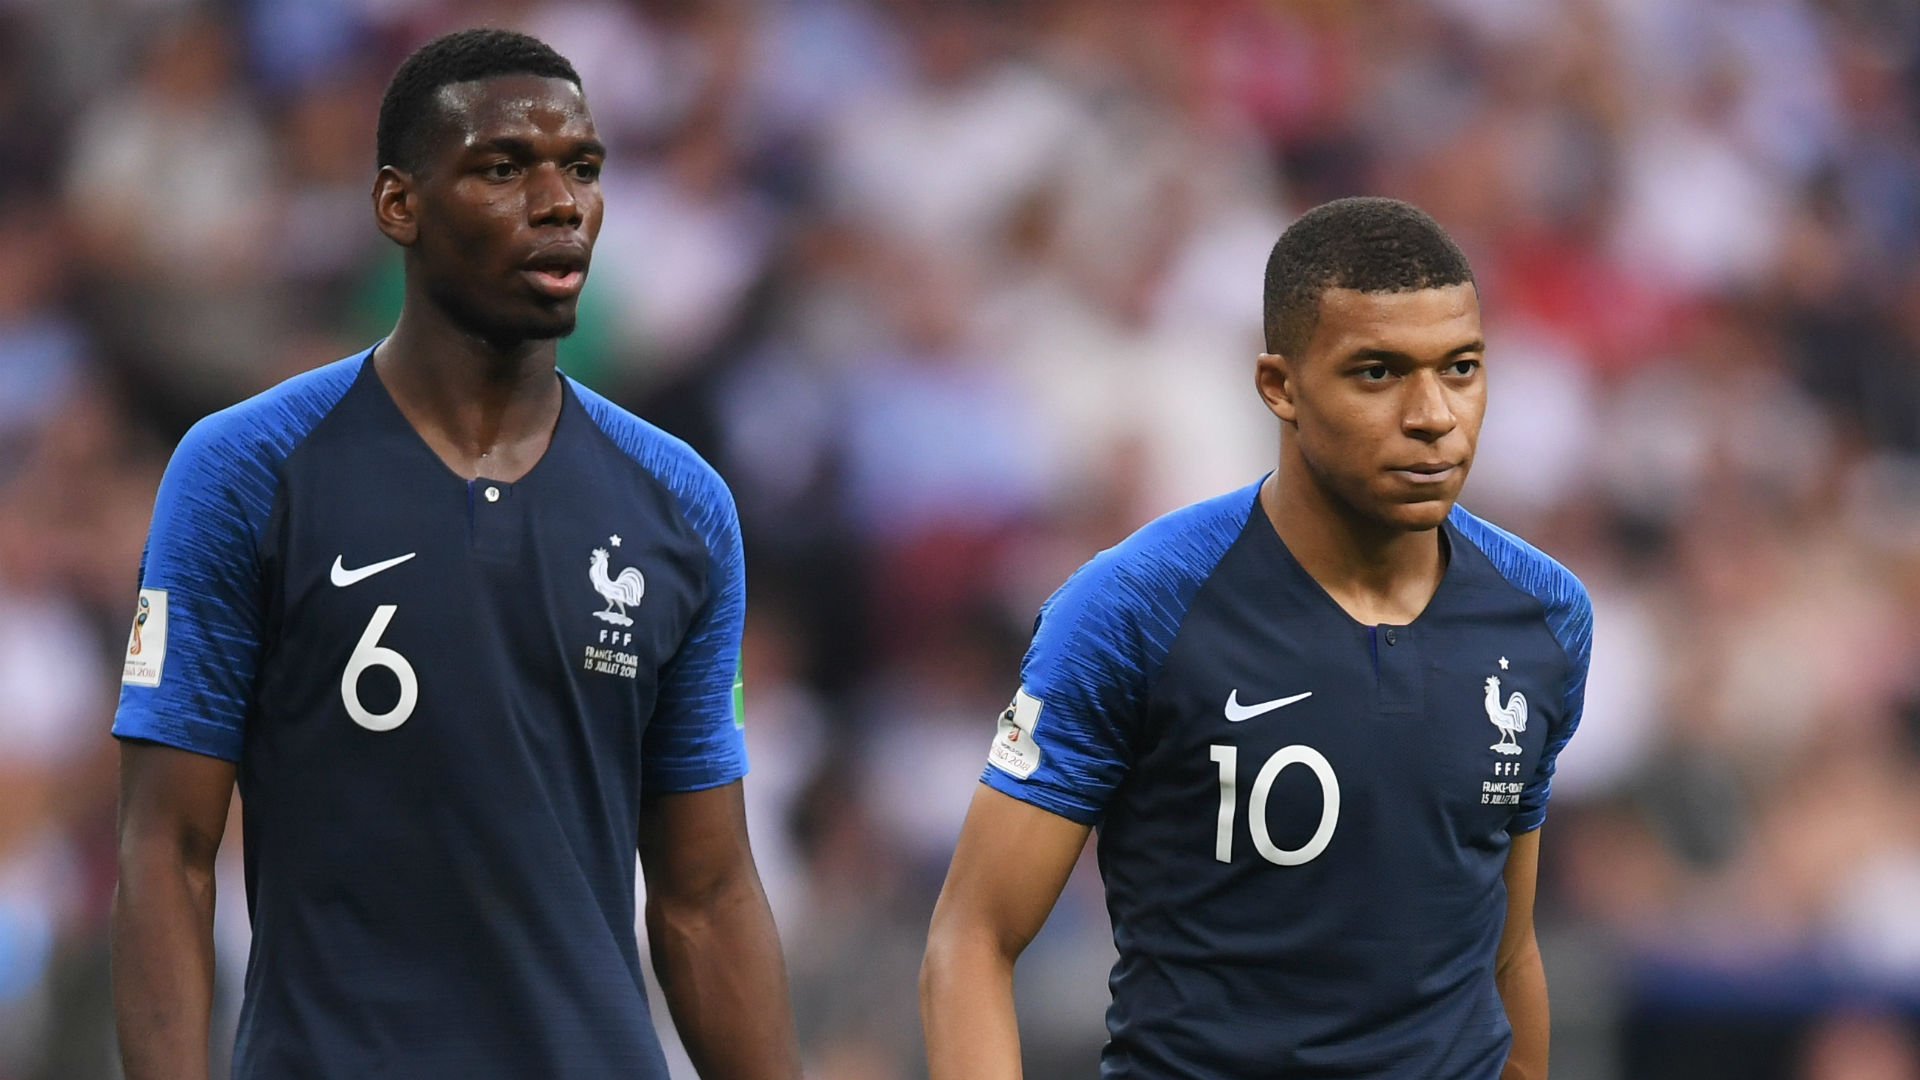 Mbappe Emulates Pele With World Cup Final Goal As Pogba